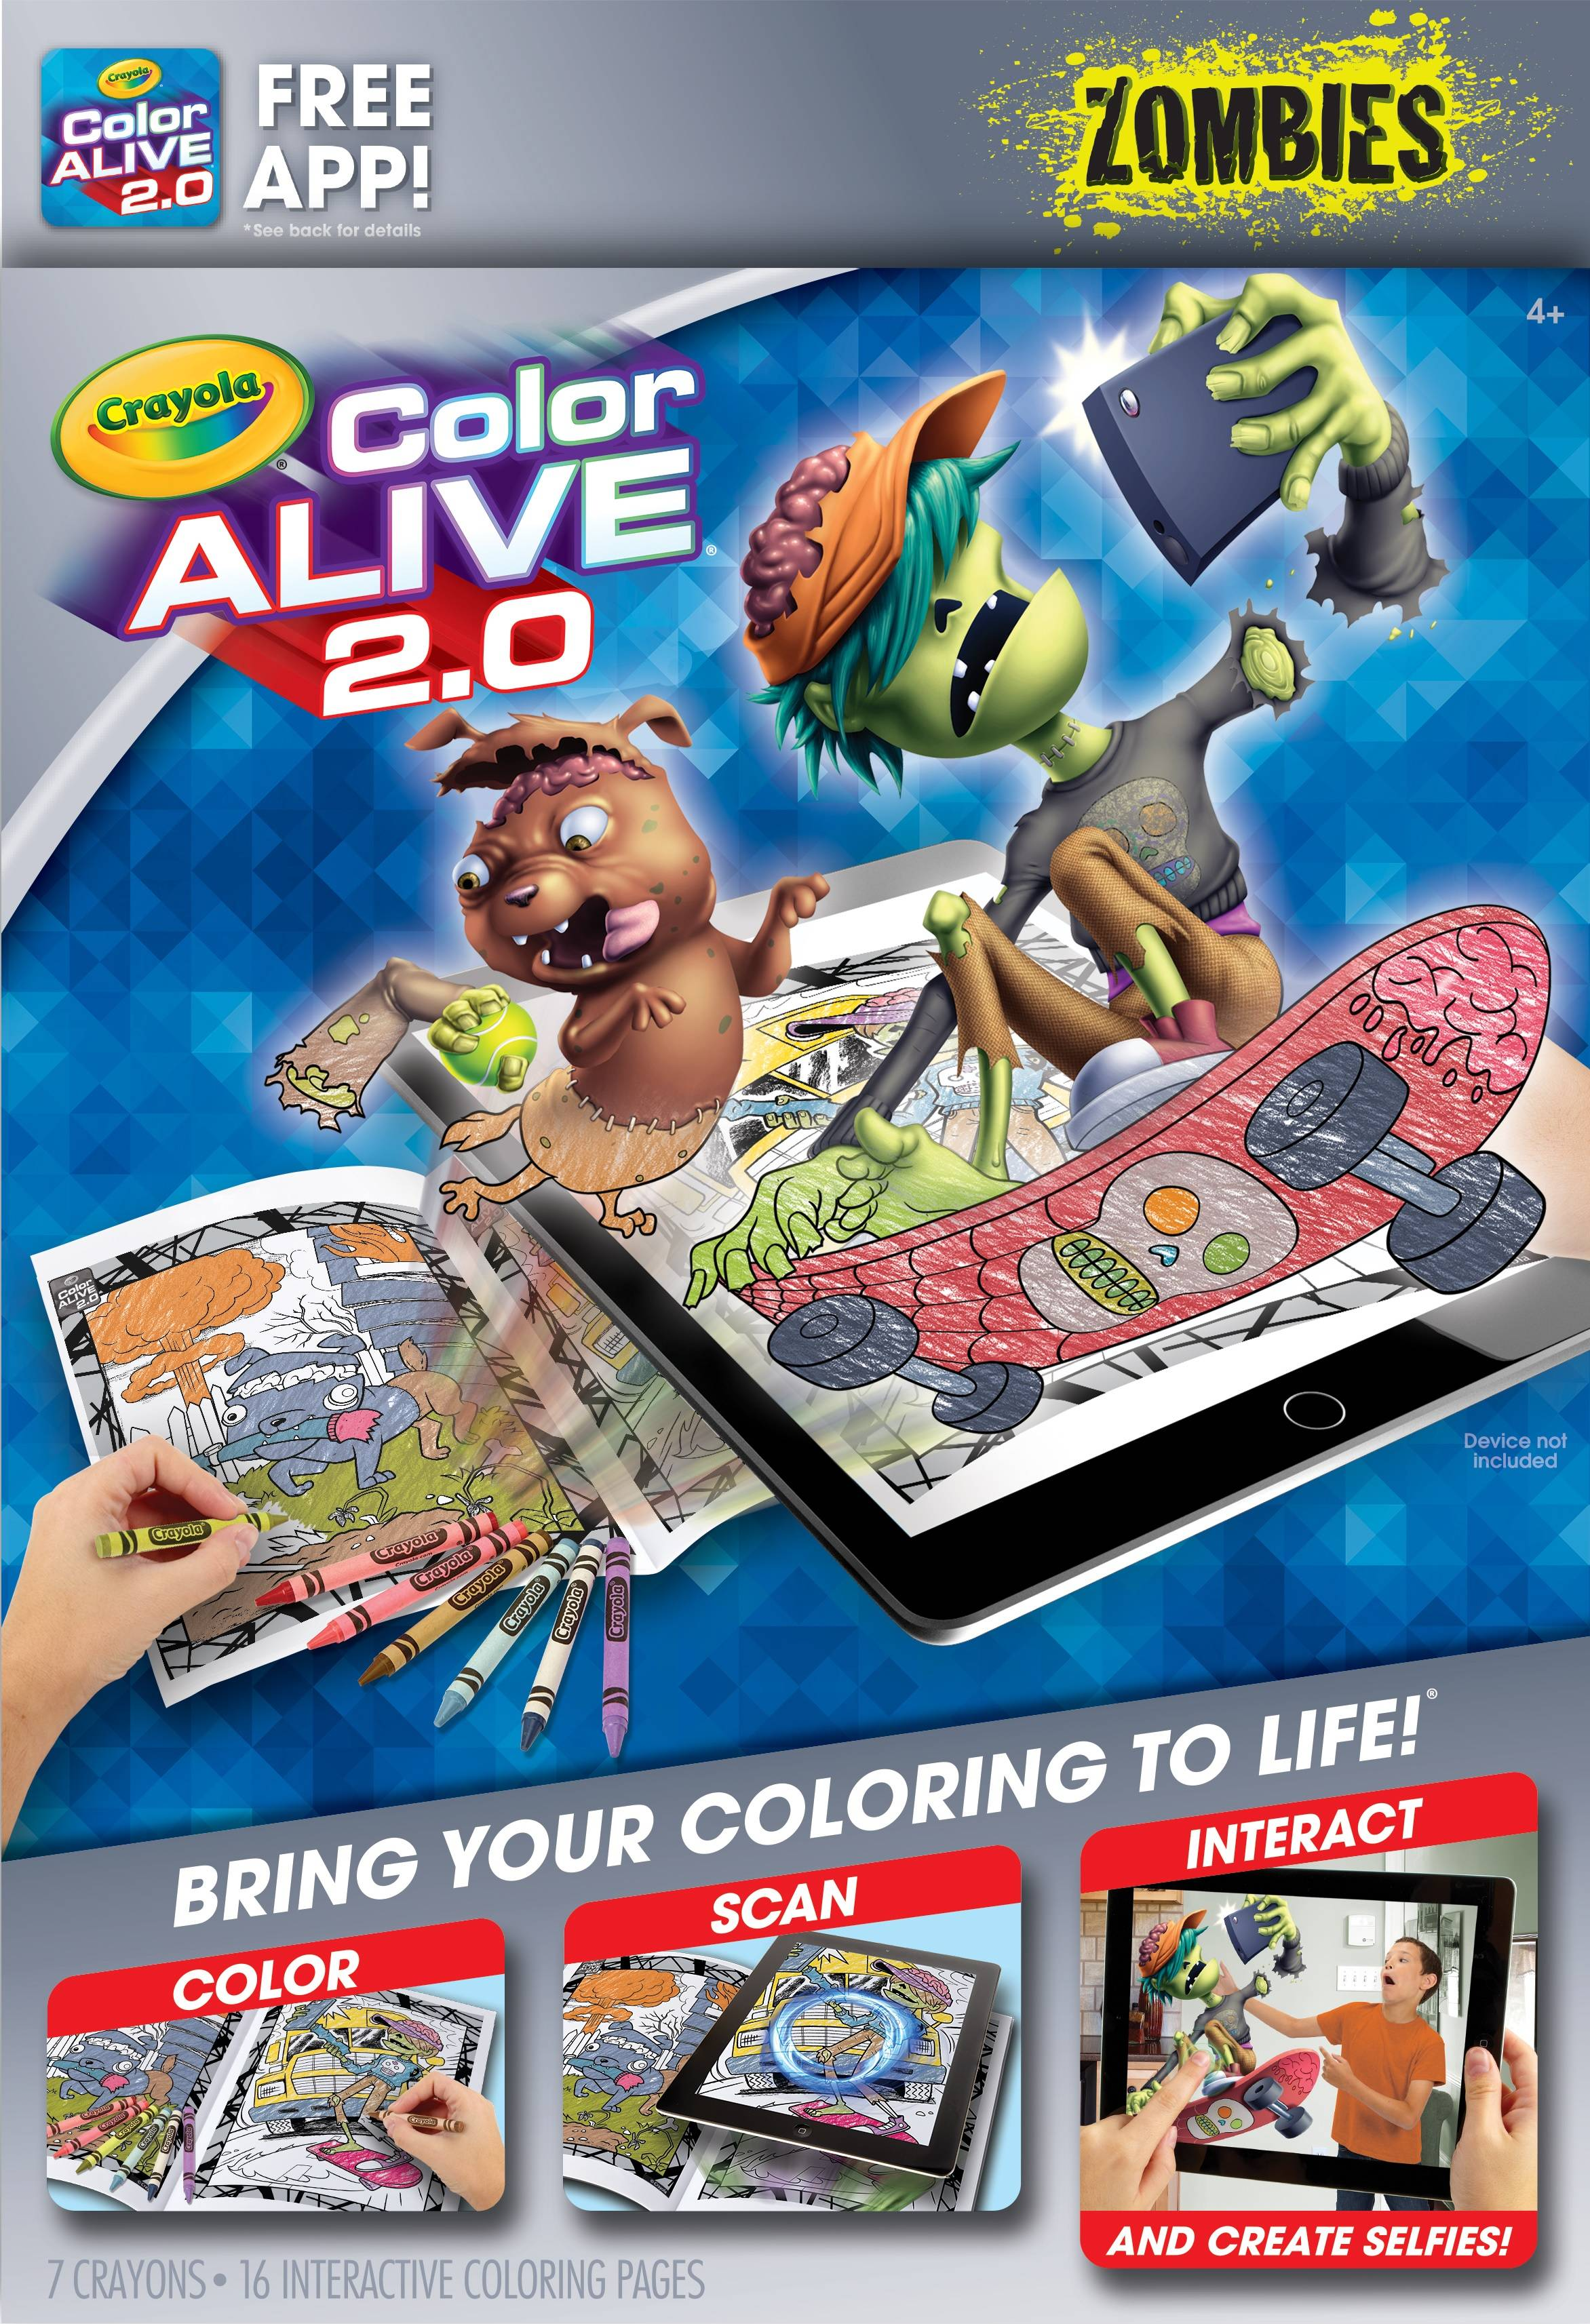 - Walmart Grocery - Crayola Color Alive 20 Interactive Coloring, Zombies  Characters, 16 Interactive Coloring Pages, 7 Crayons